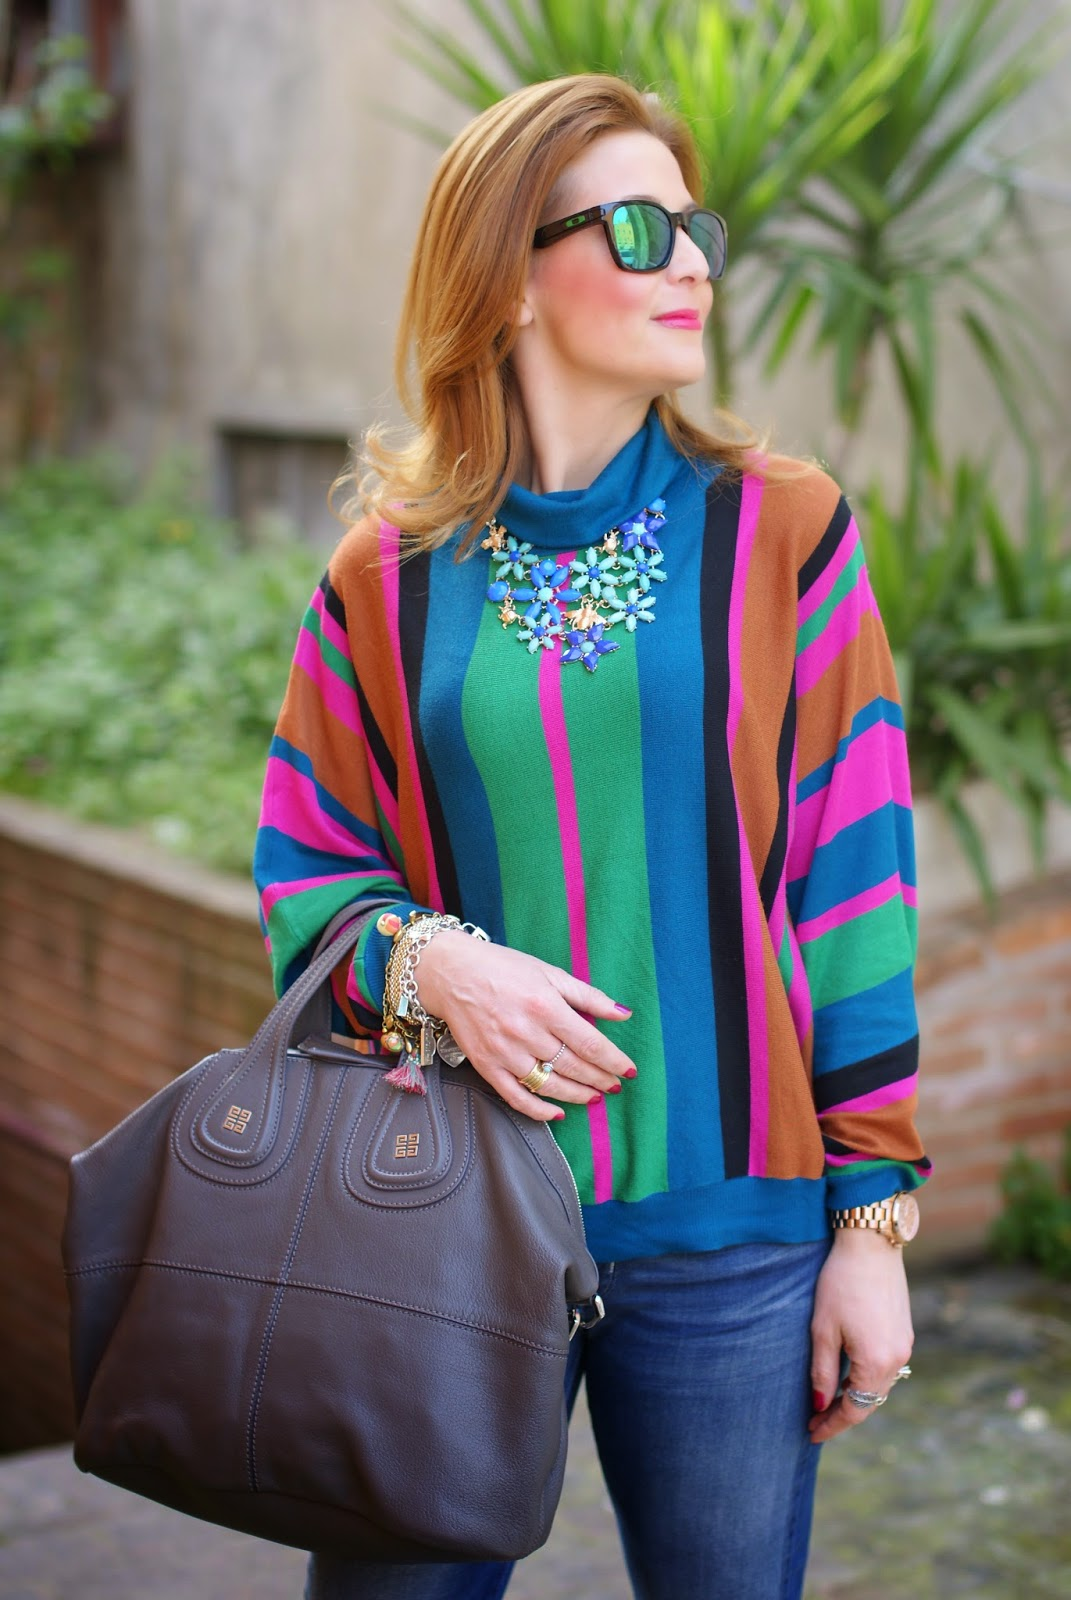 Givenchy Nightingale bag, 70s style, striped top, flower gems necklace, Fashion and Cookies fashion blog, fashion blogger